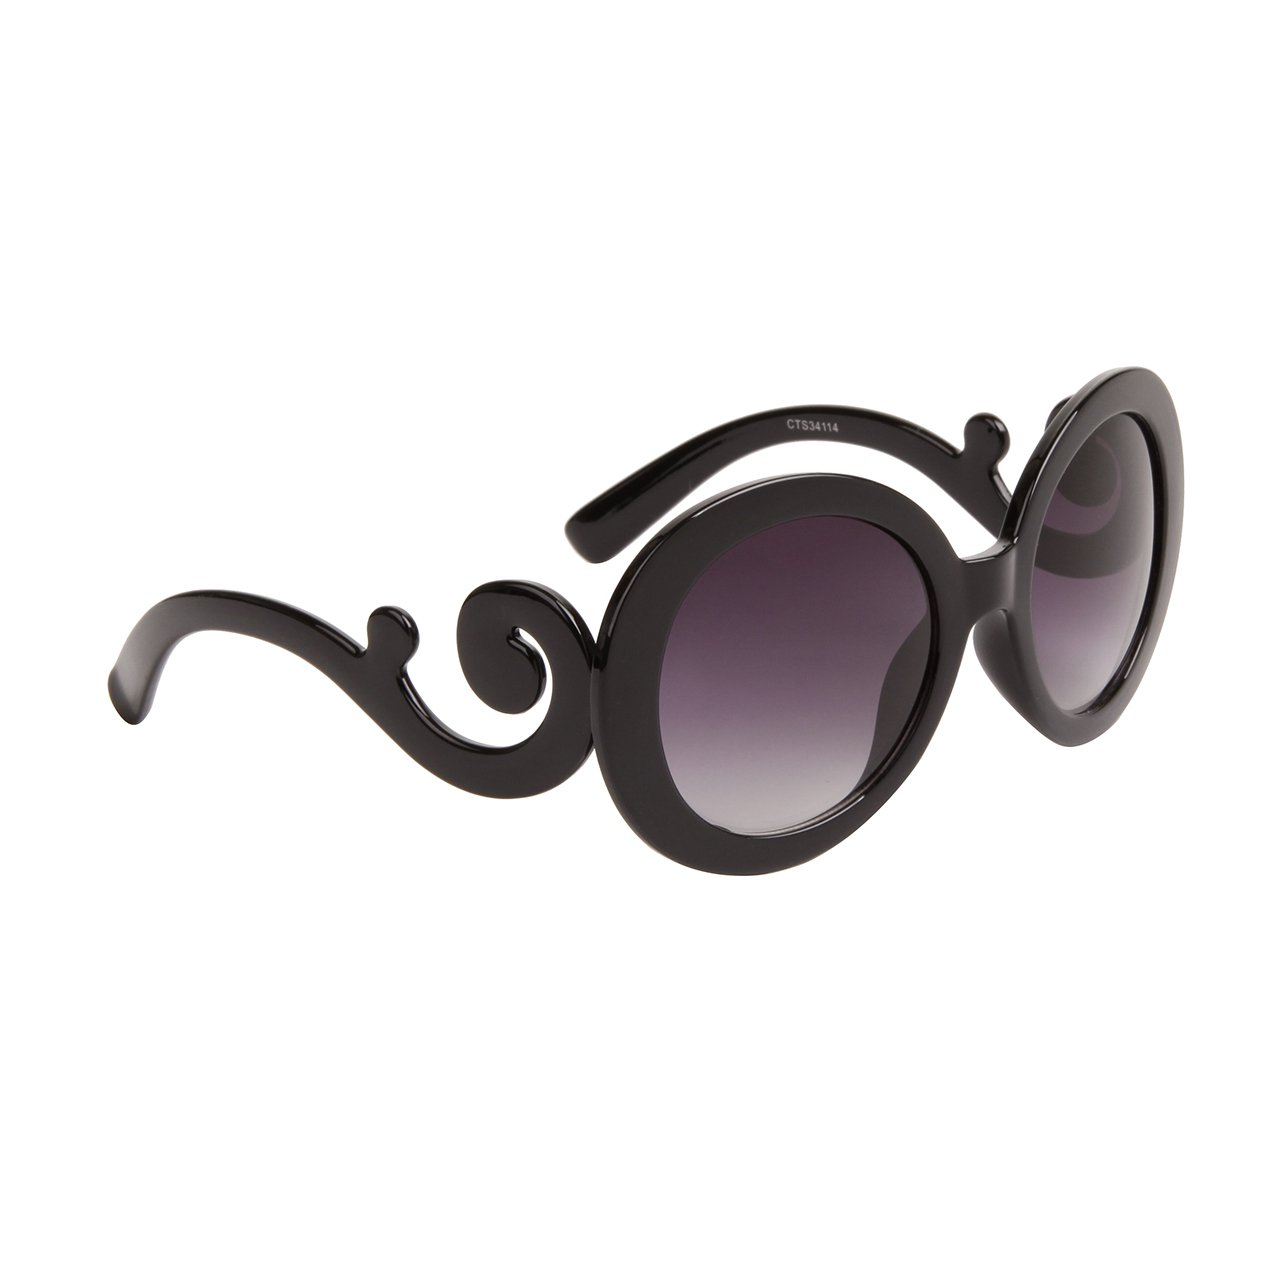 DESIGNER INSPIRED WOMEN'S SUNGLASSES BLACK FRAME TOP QUALITY UV PROTECTION